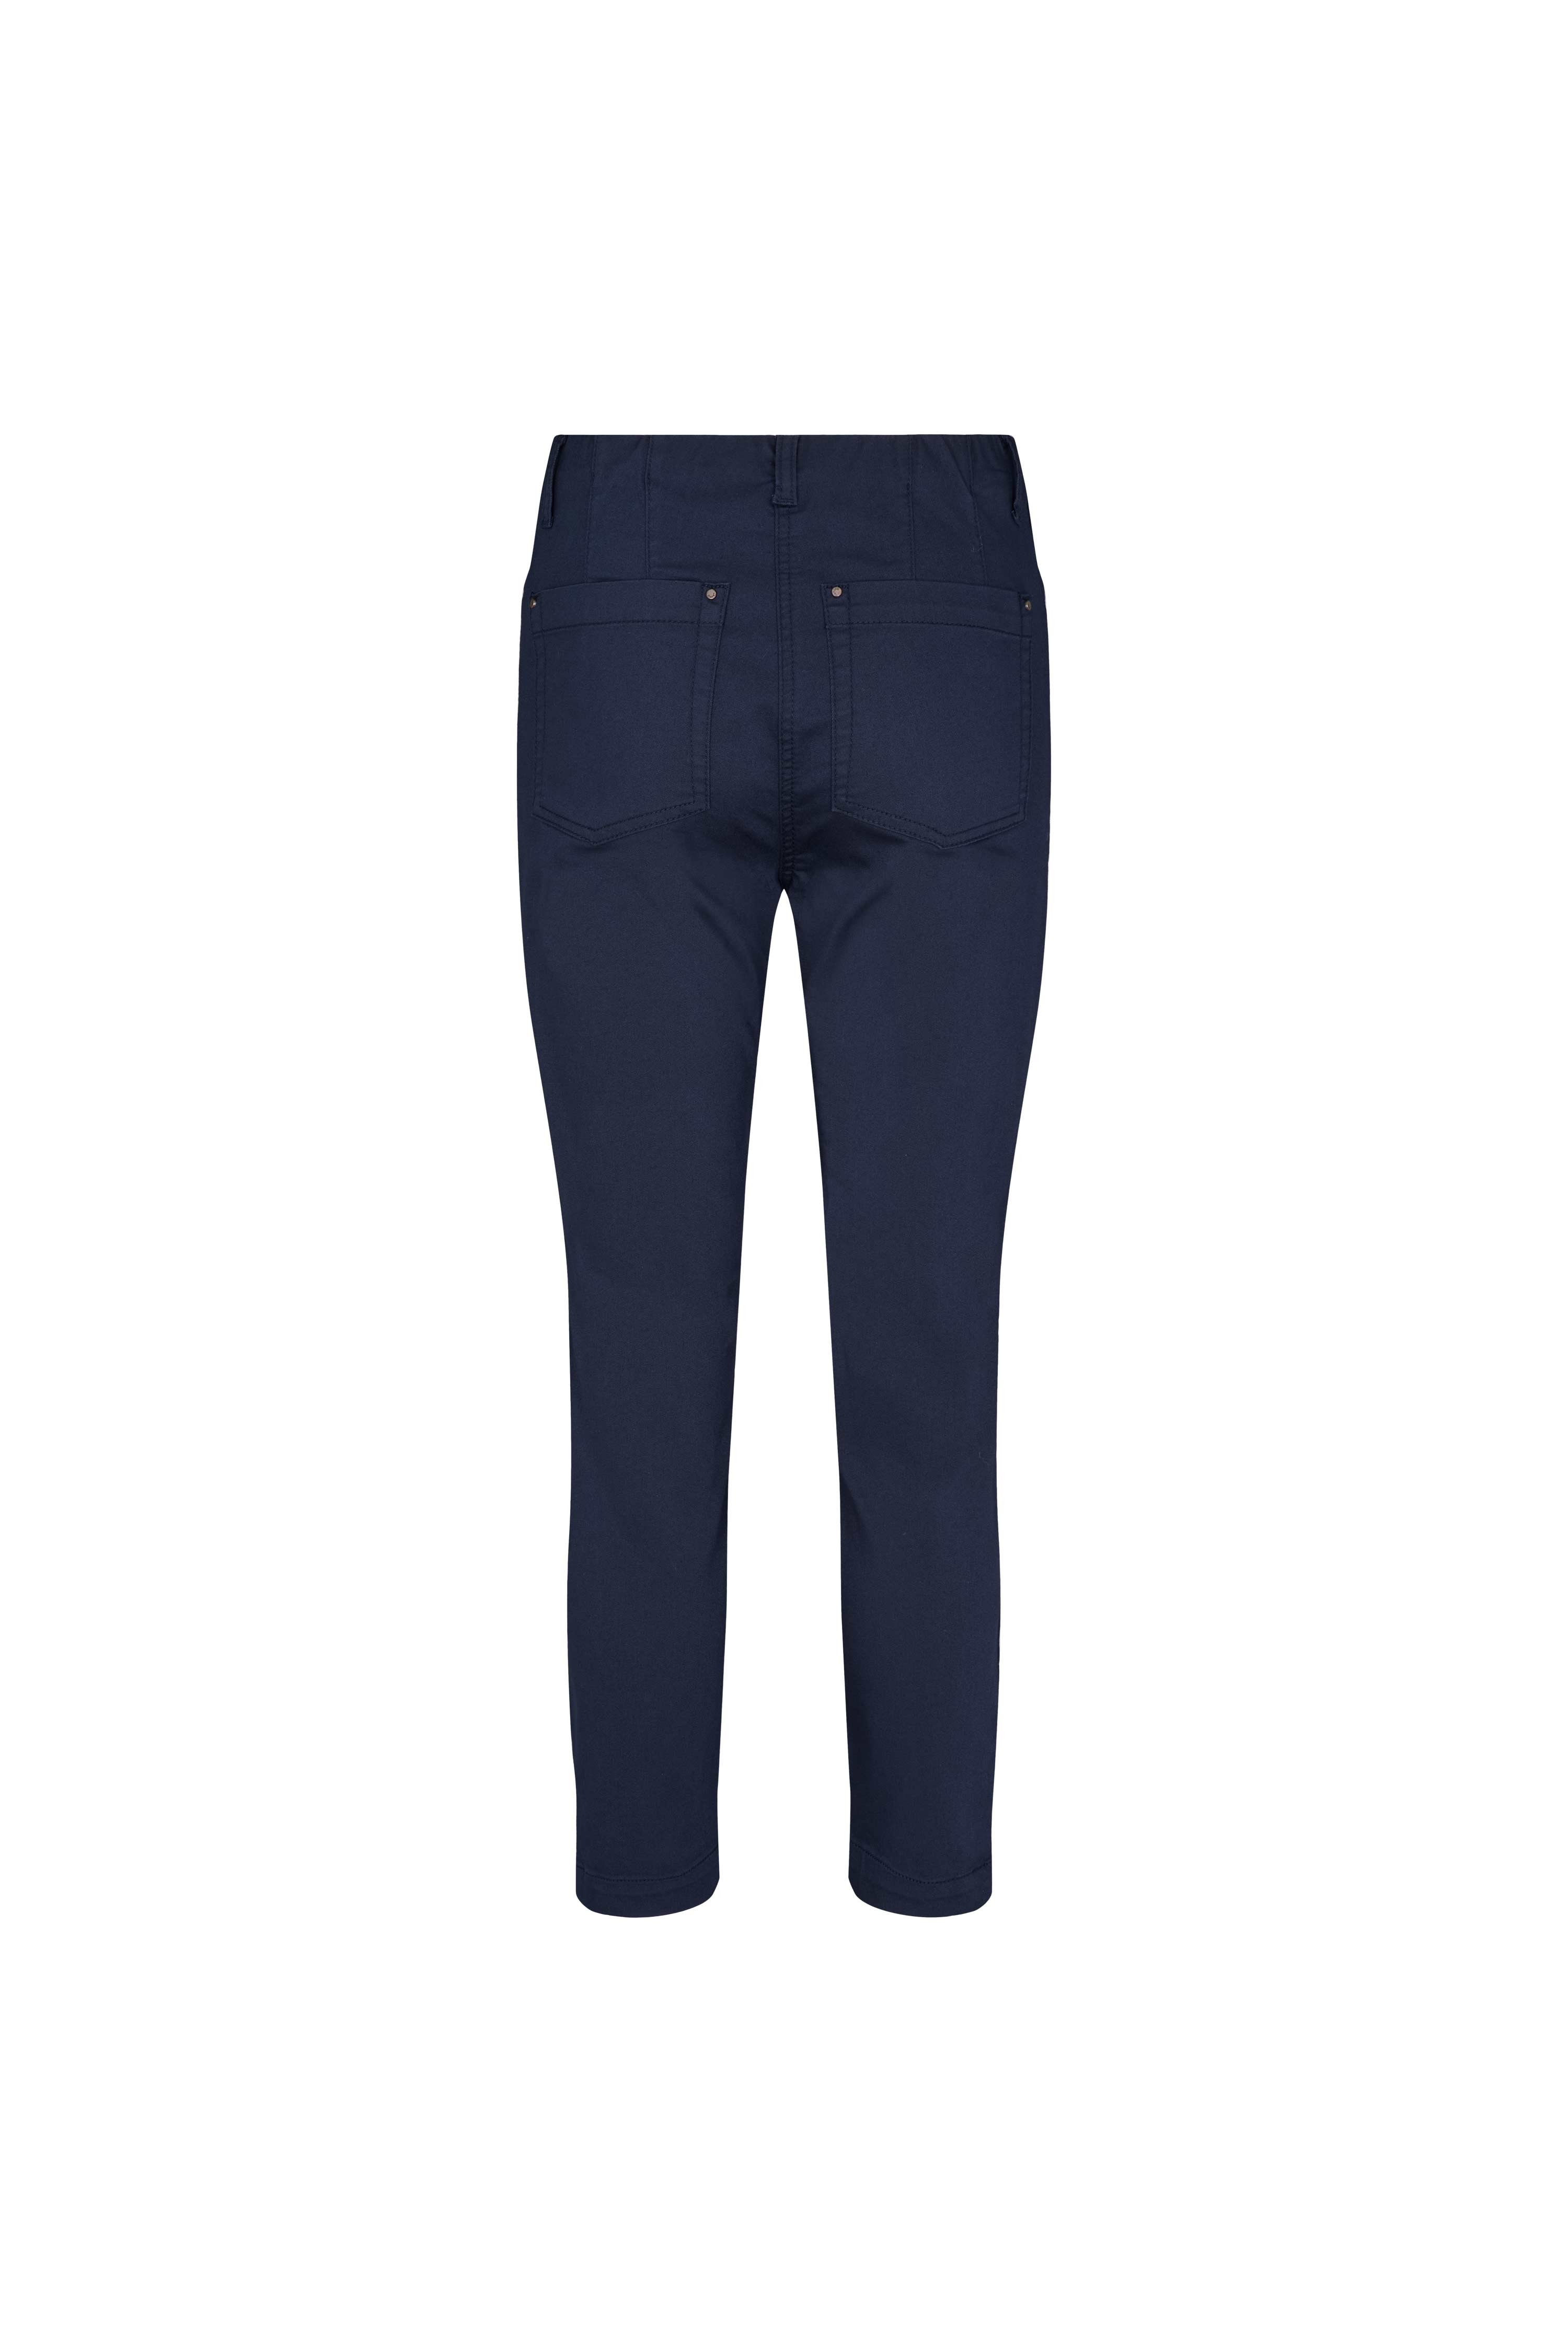 LauRie Madison Slim Cropped Bukser, Navy, 40